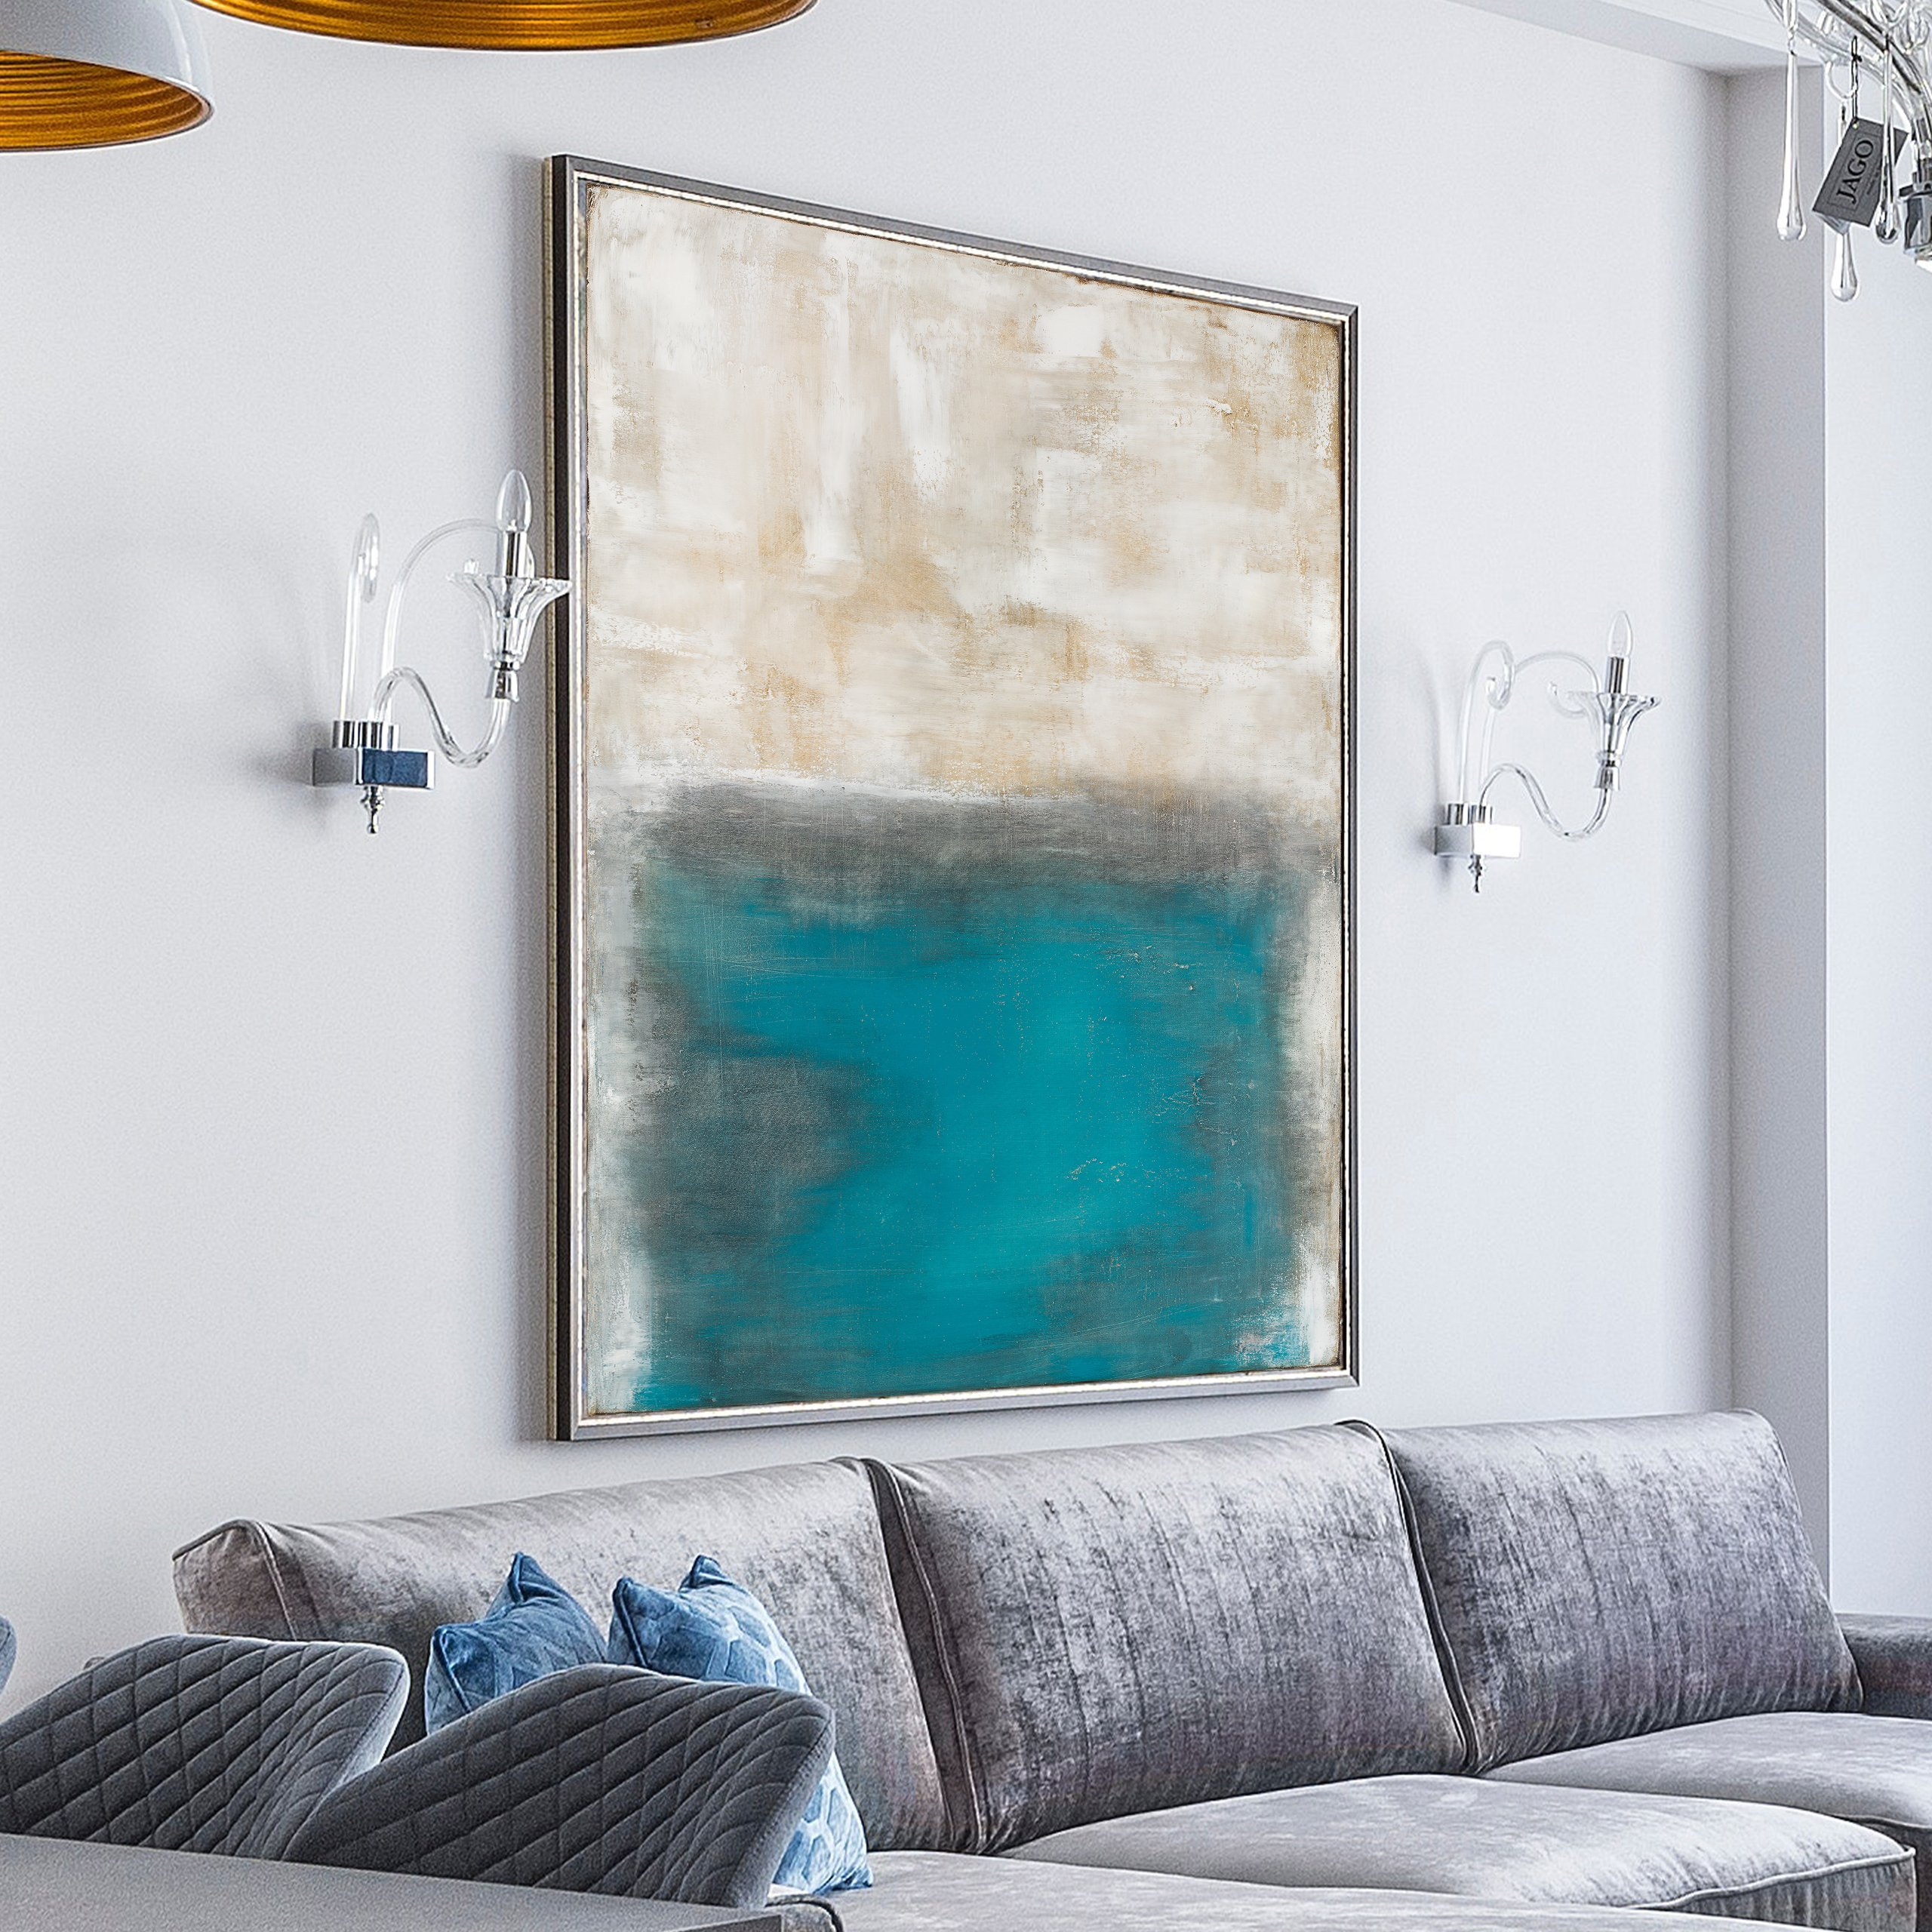 Light blue and white abstract modern art